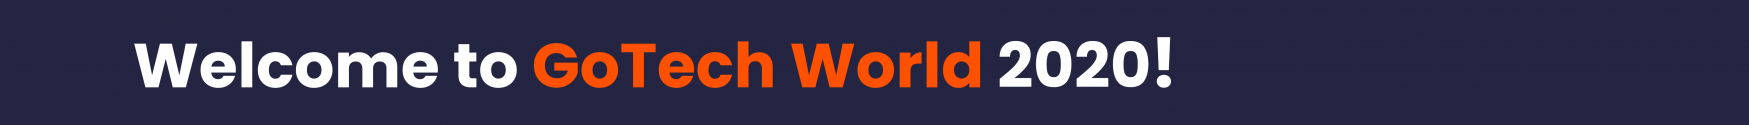 Event Info - Welcome to GoTech World 2020